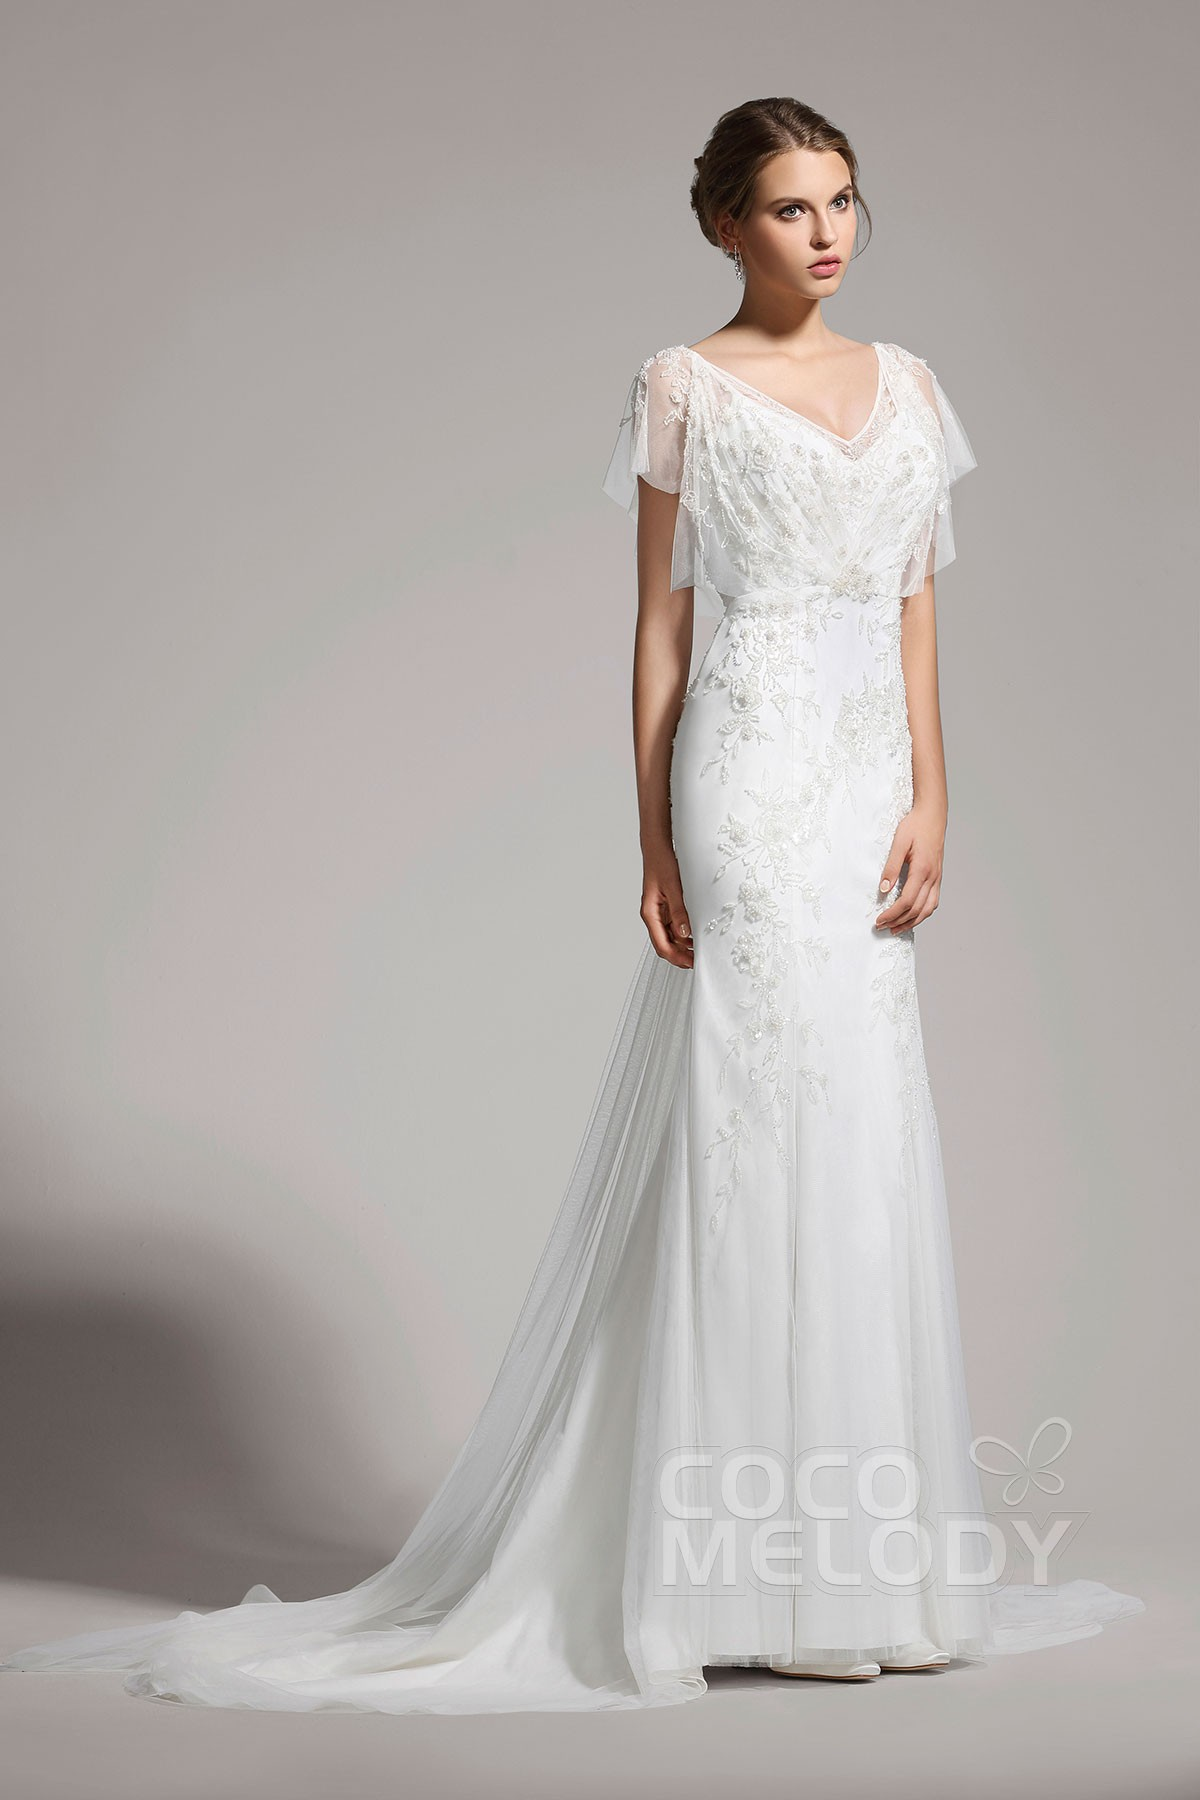 Delicate Sheath Column V Neck Tulle Ivory Cap Sleeve Wedding Dress With Beading Awvt15001